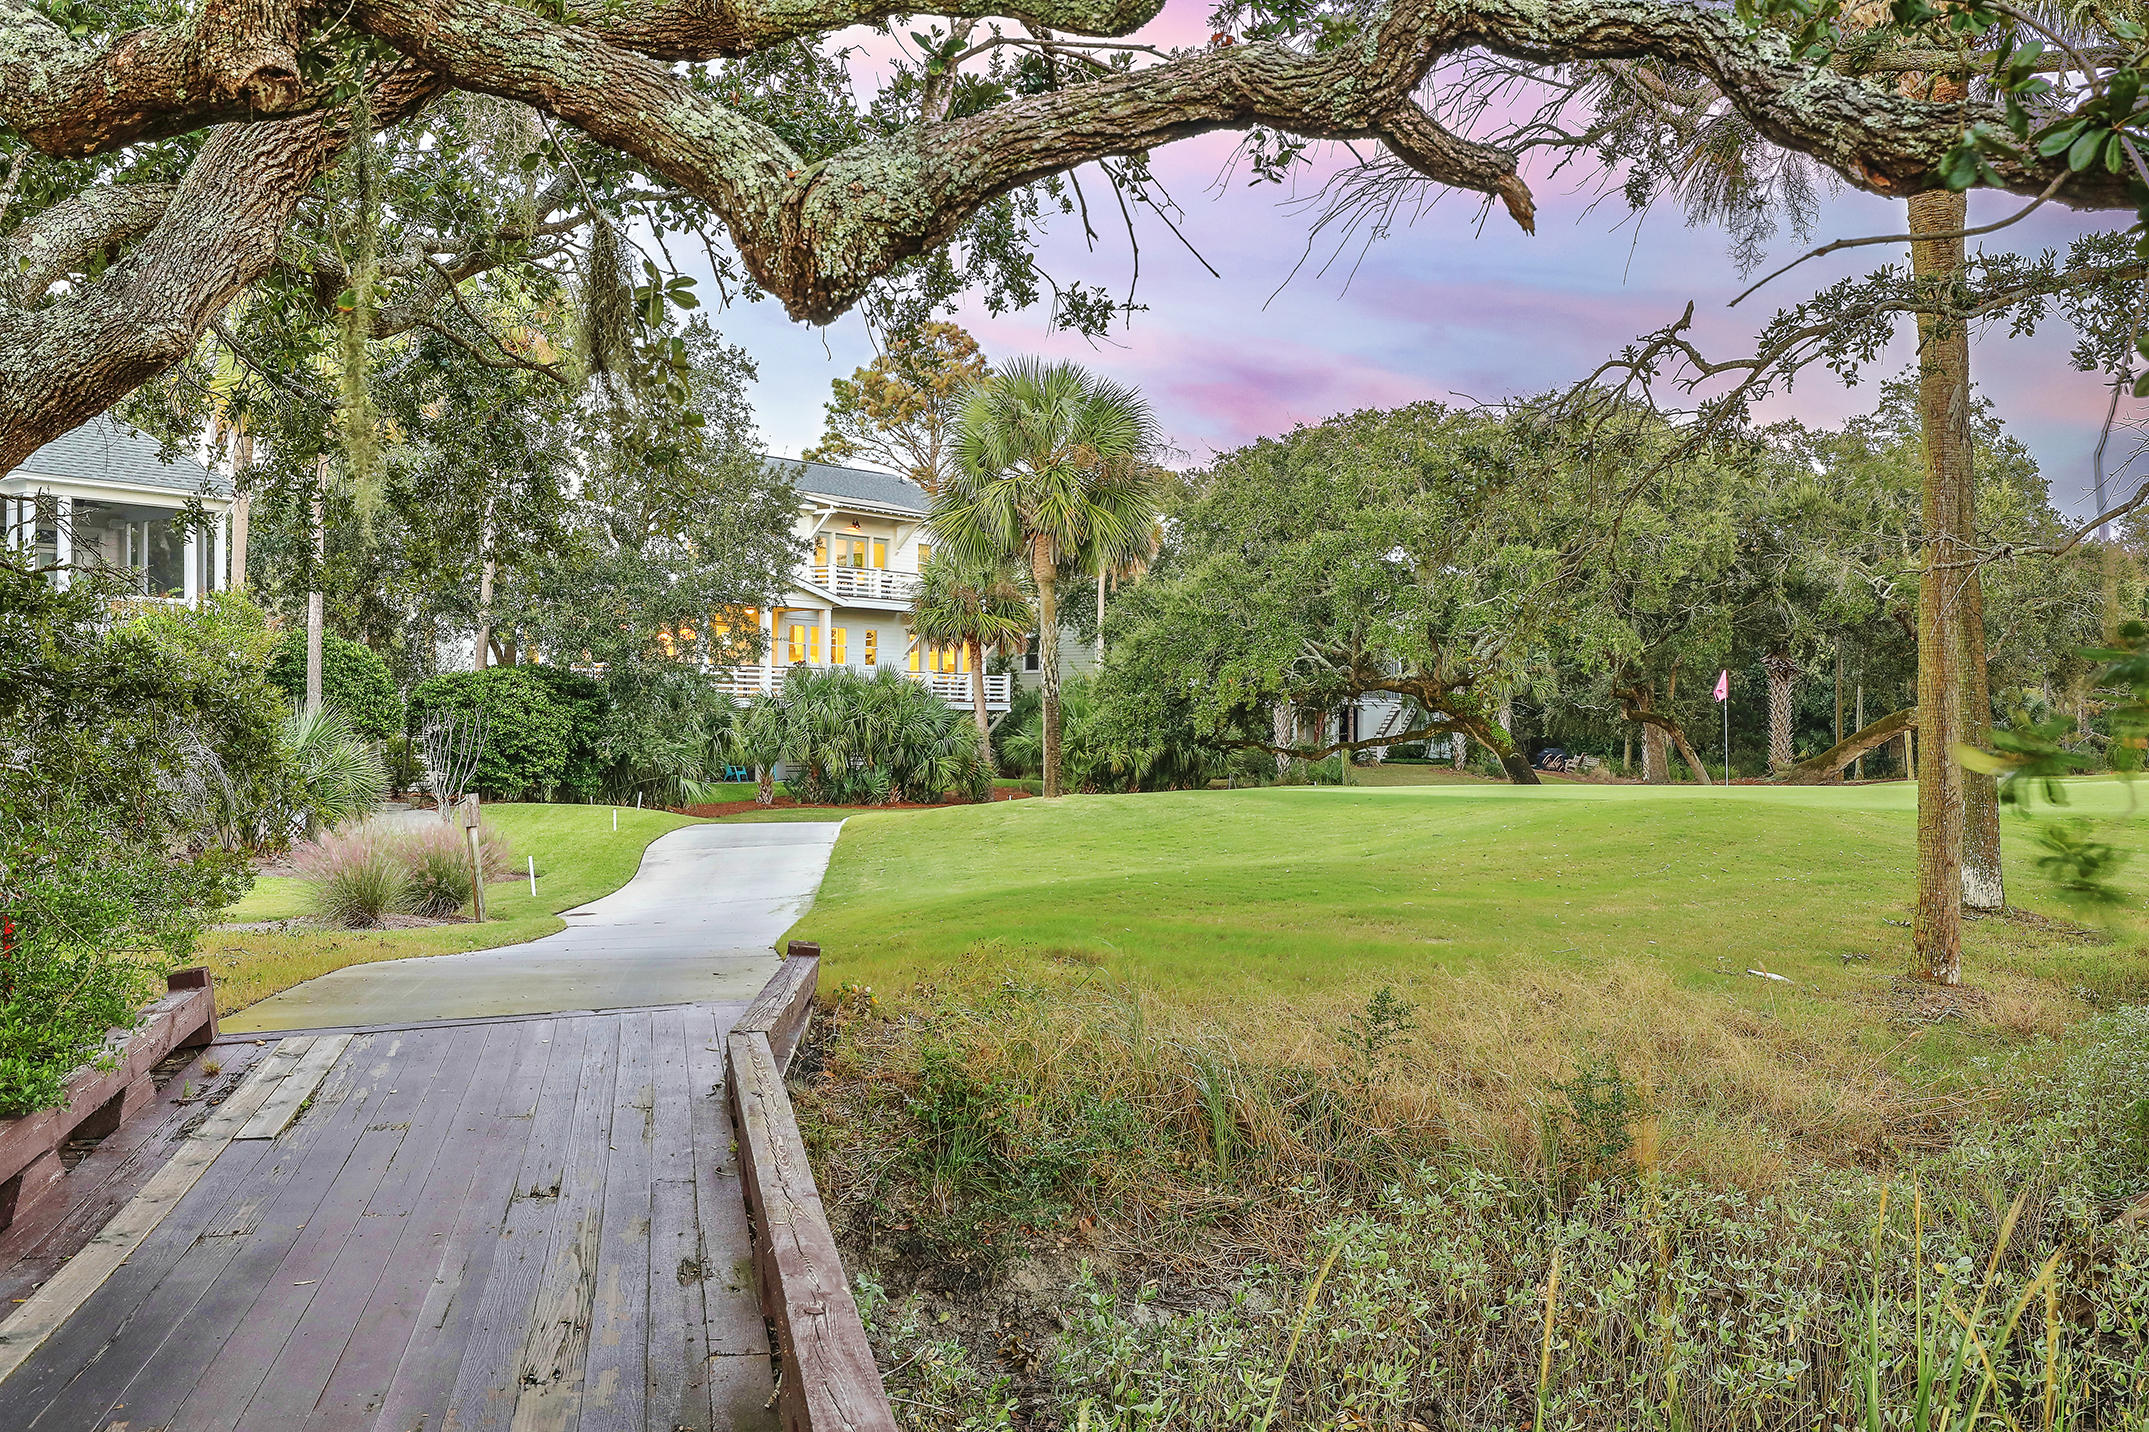 Wild Dunes Homes For Sale - 55 Seagrass, Isle of Palms, SC - 49